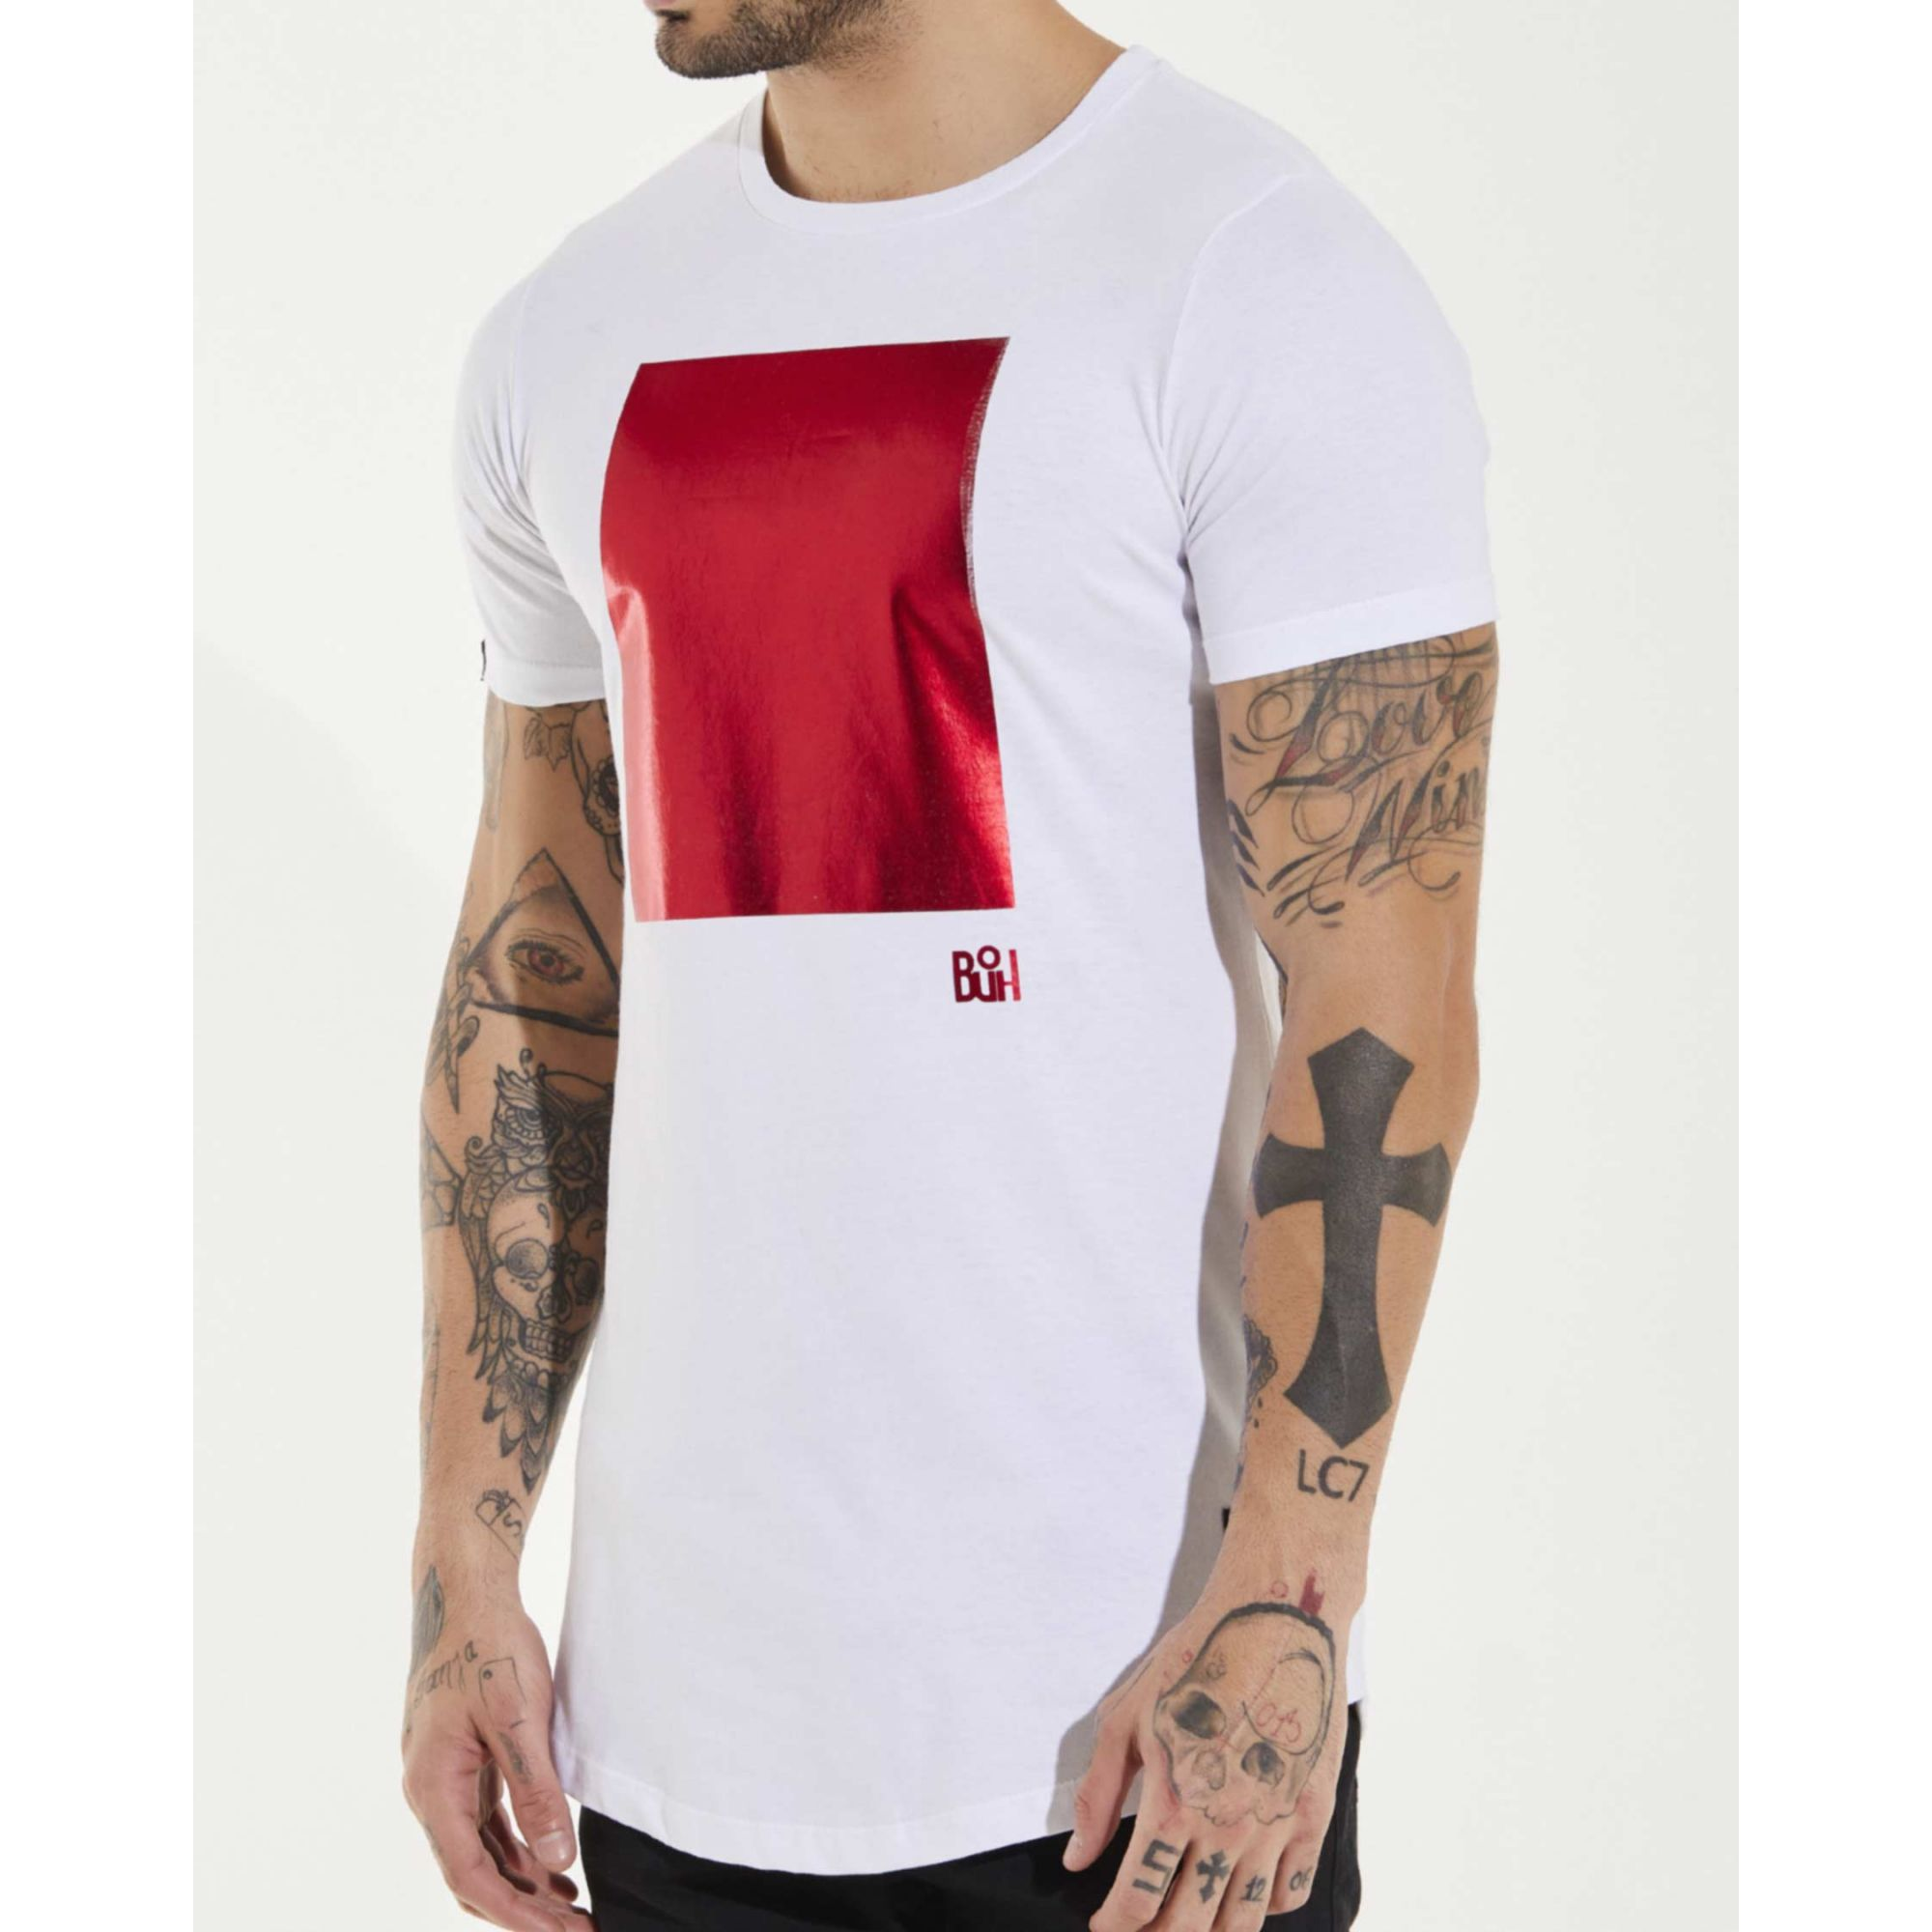 Camiseta Buh Square Foil White & Red